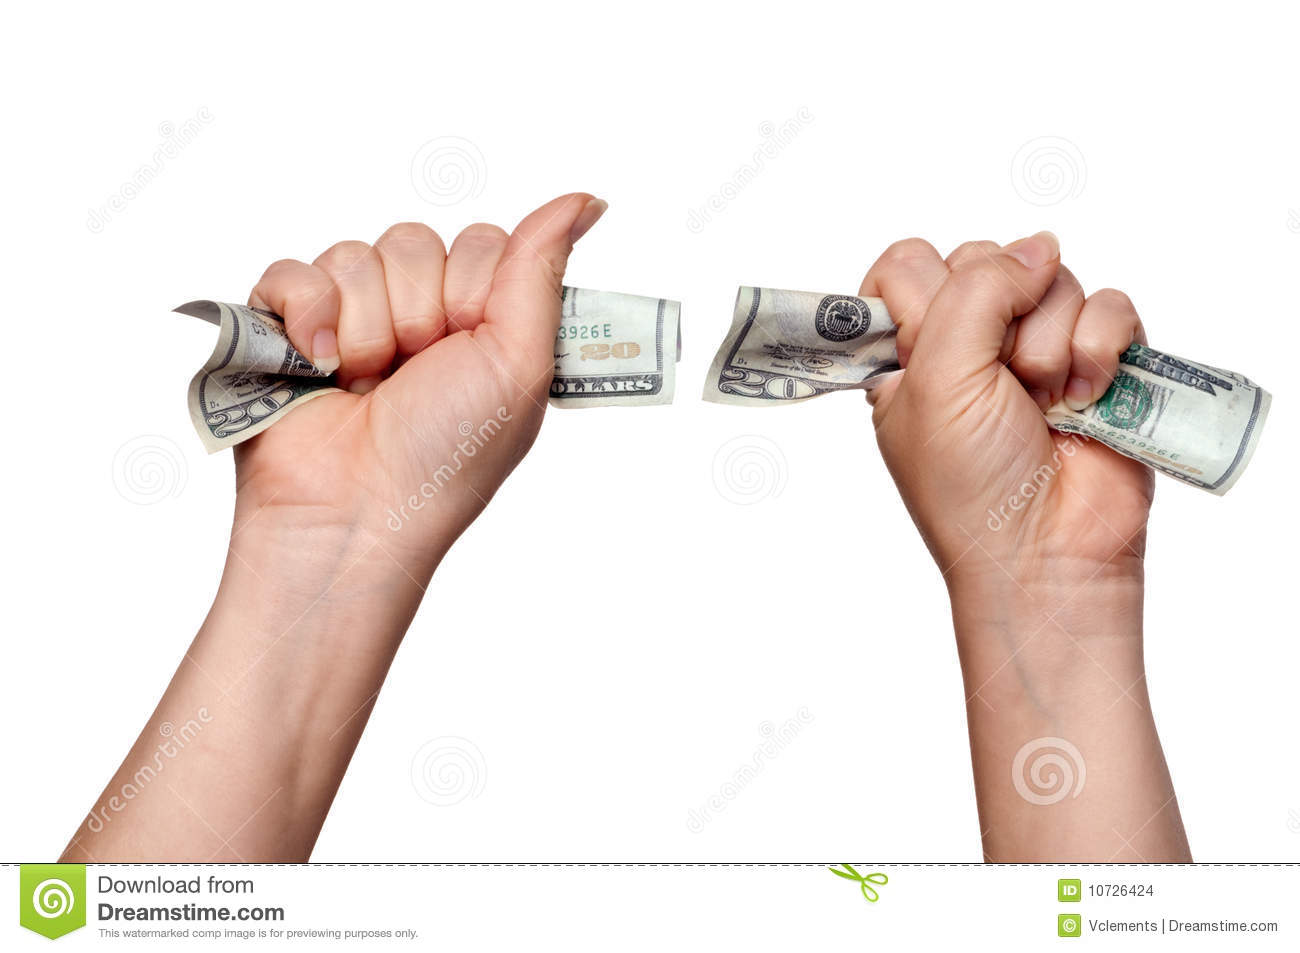 Hands Clutching American Money Stock Images - Image: 10726424